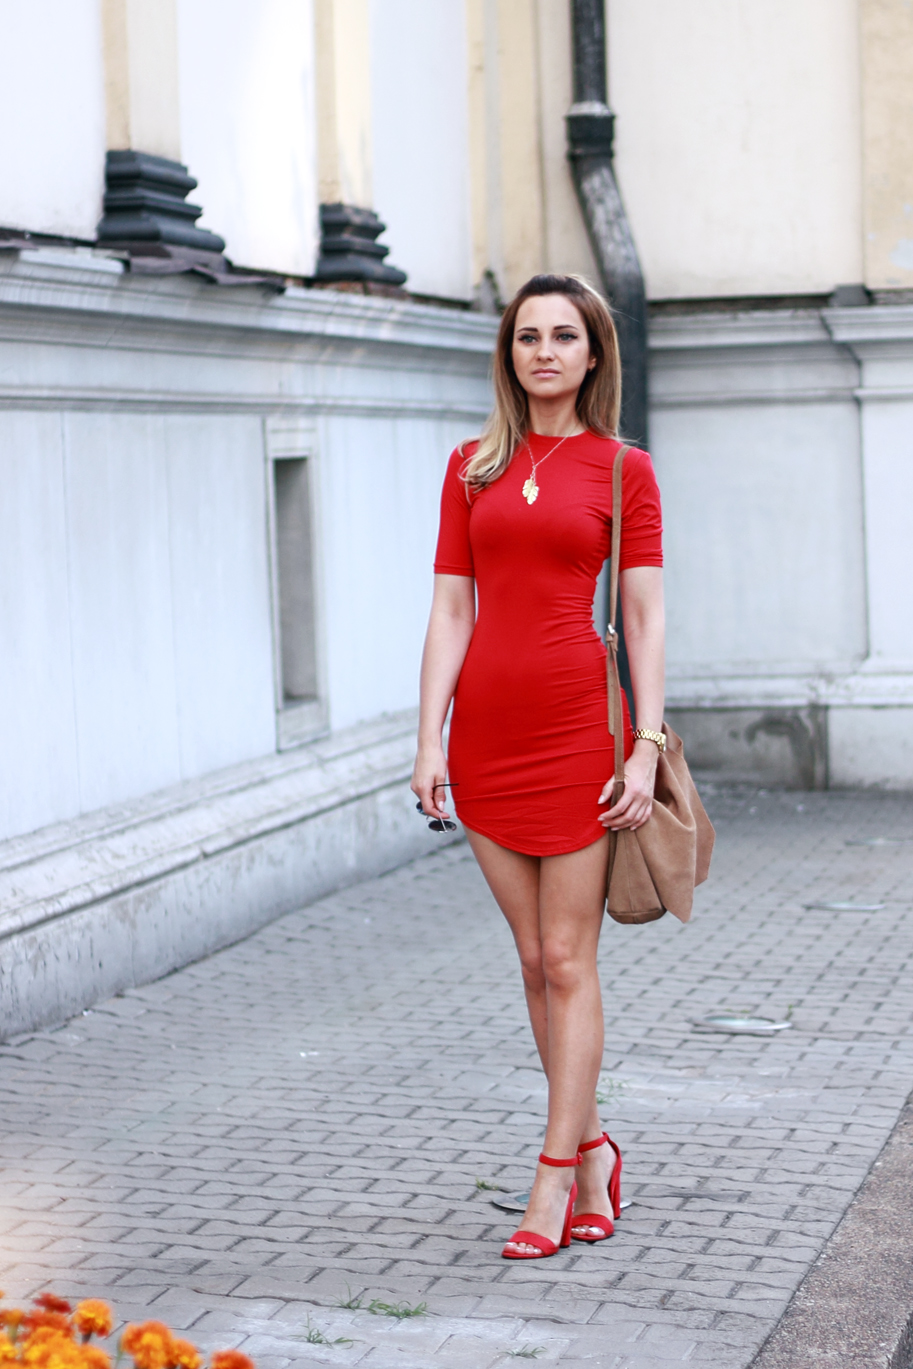 street style fashion red dress blonde girl tumblr ootd outfit lookbook look what to wear